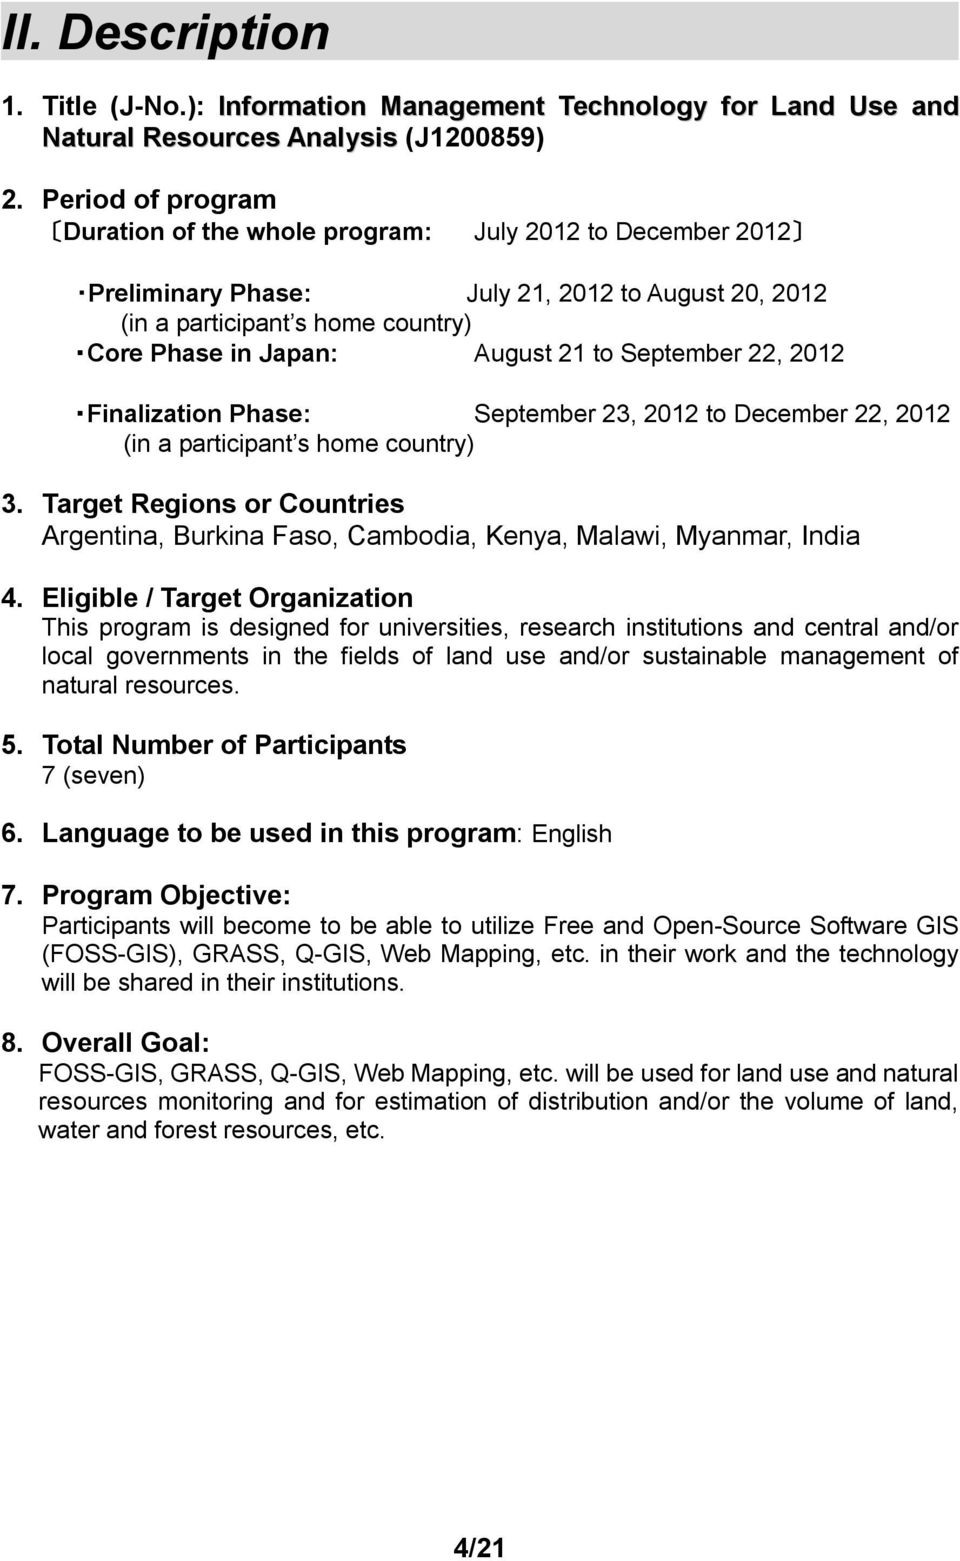 September 22, 2012 Finalization Phase: September 23, 2012 to December 22, 2012 (in a participant s home country) 3.